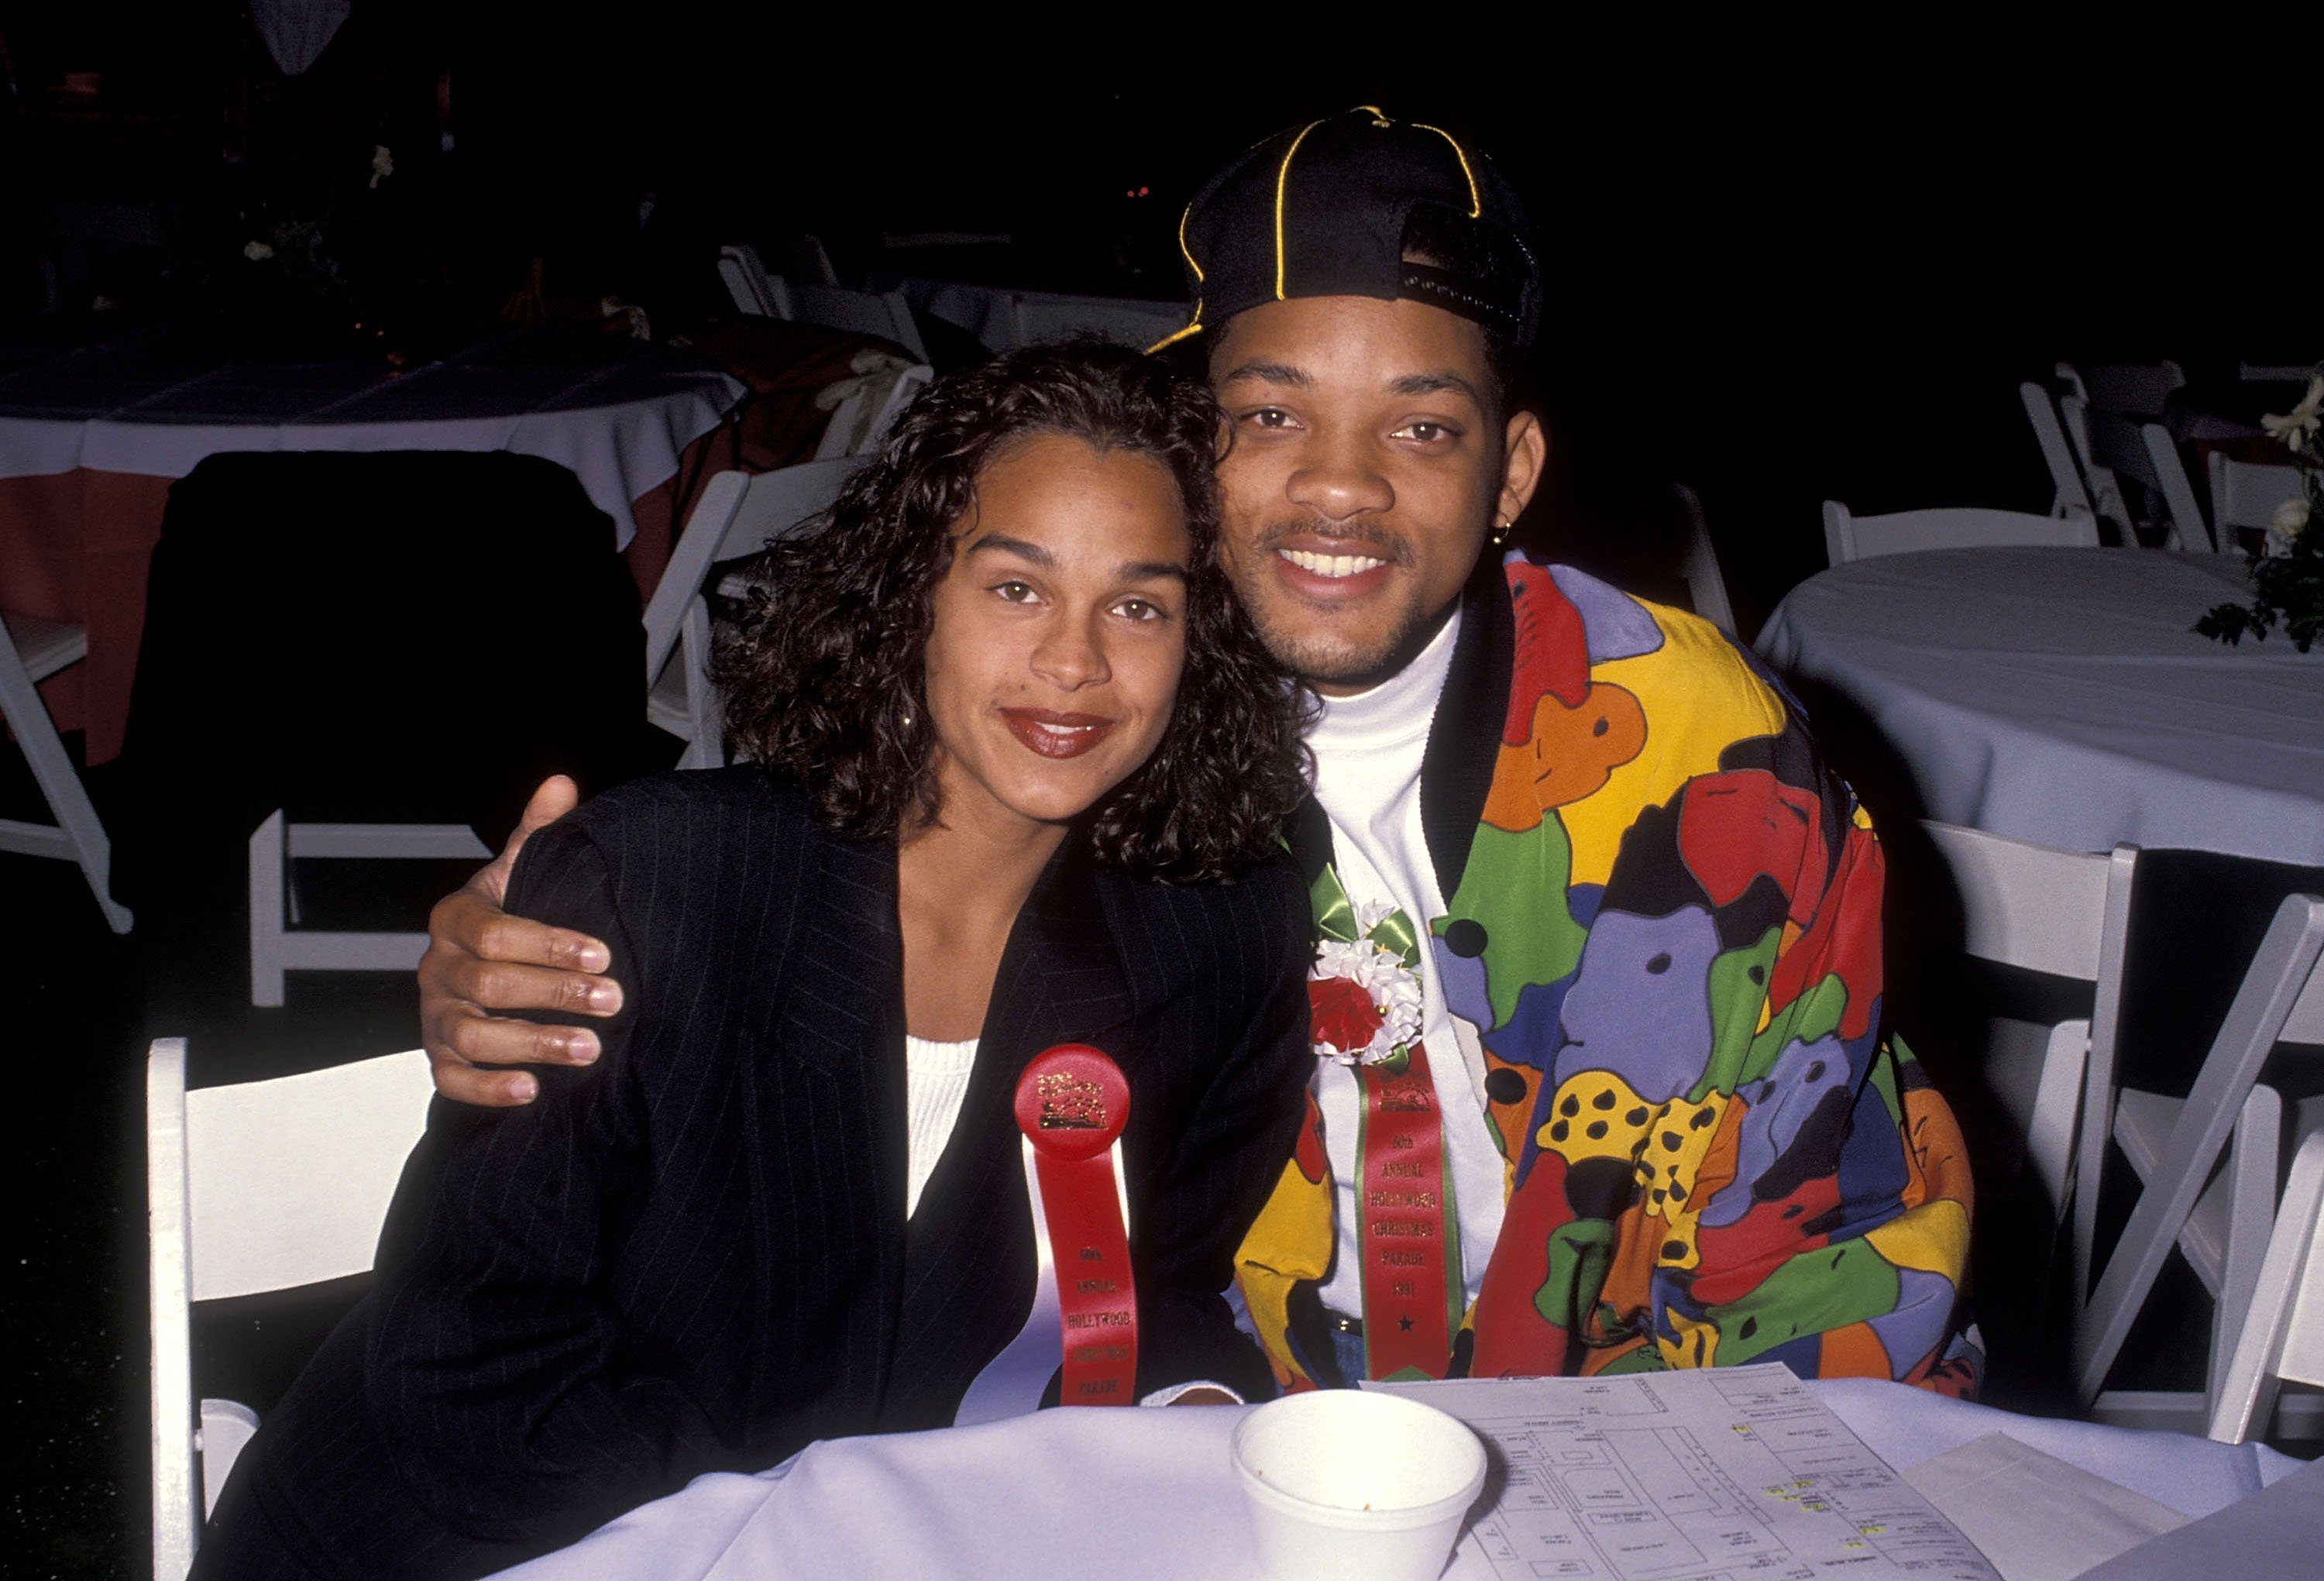 Will Smith and Sheree Zampino attend the 60th Annual Hollywood Christmas Parade on December 1, 1991 in Hollywood, California. | Source: Getty Images